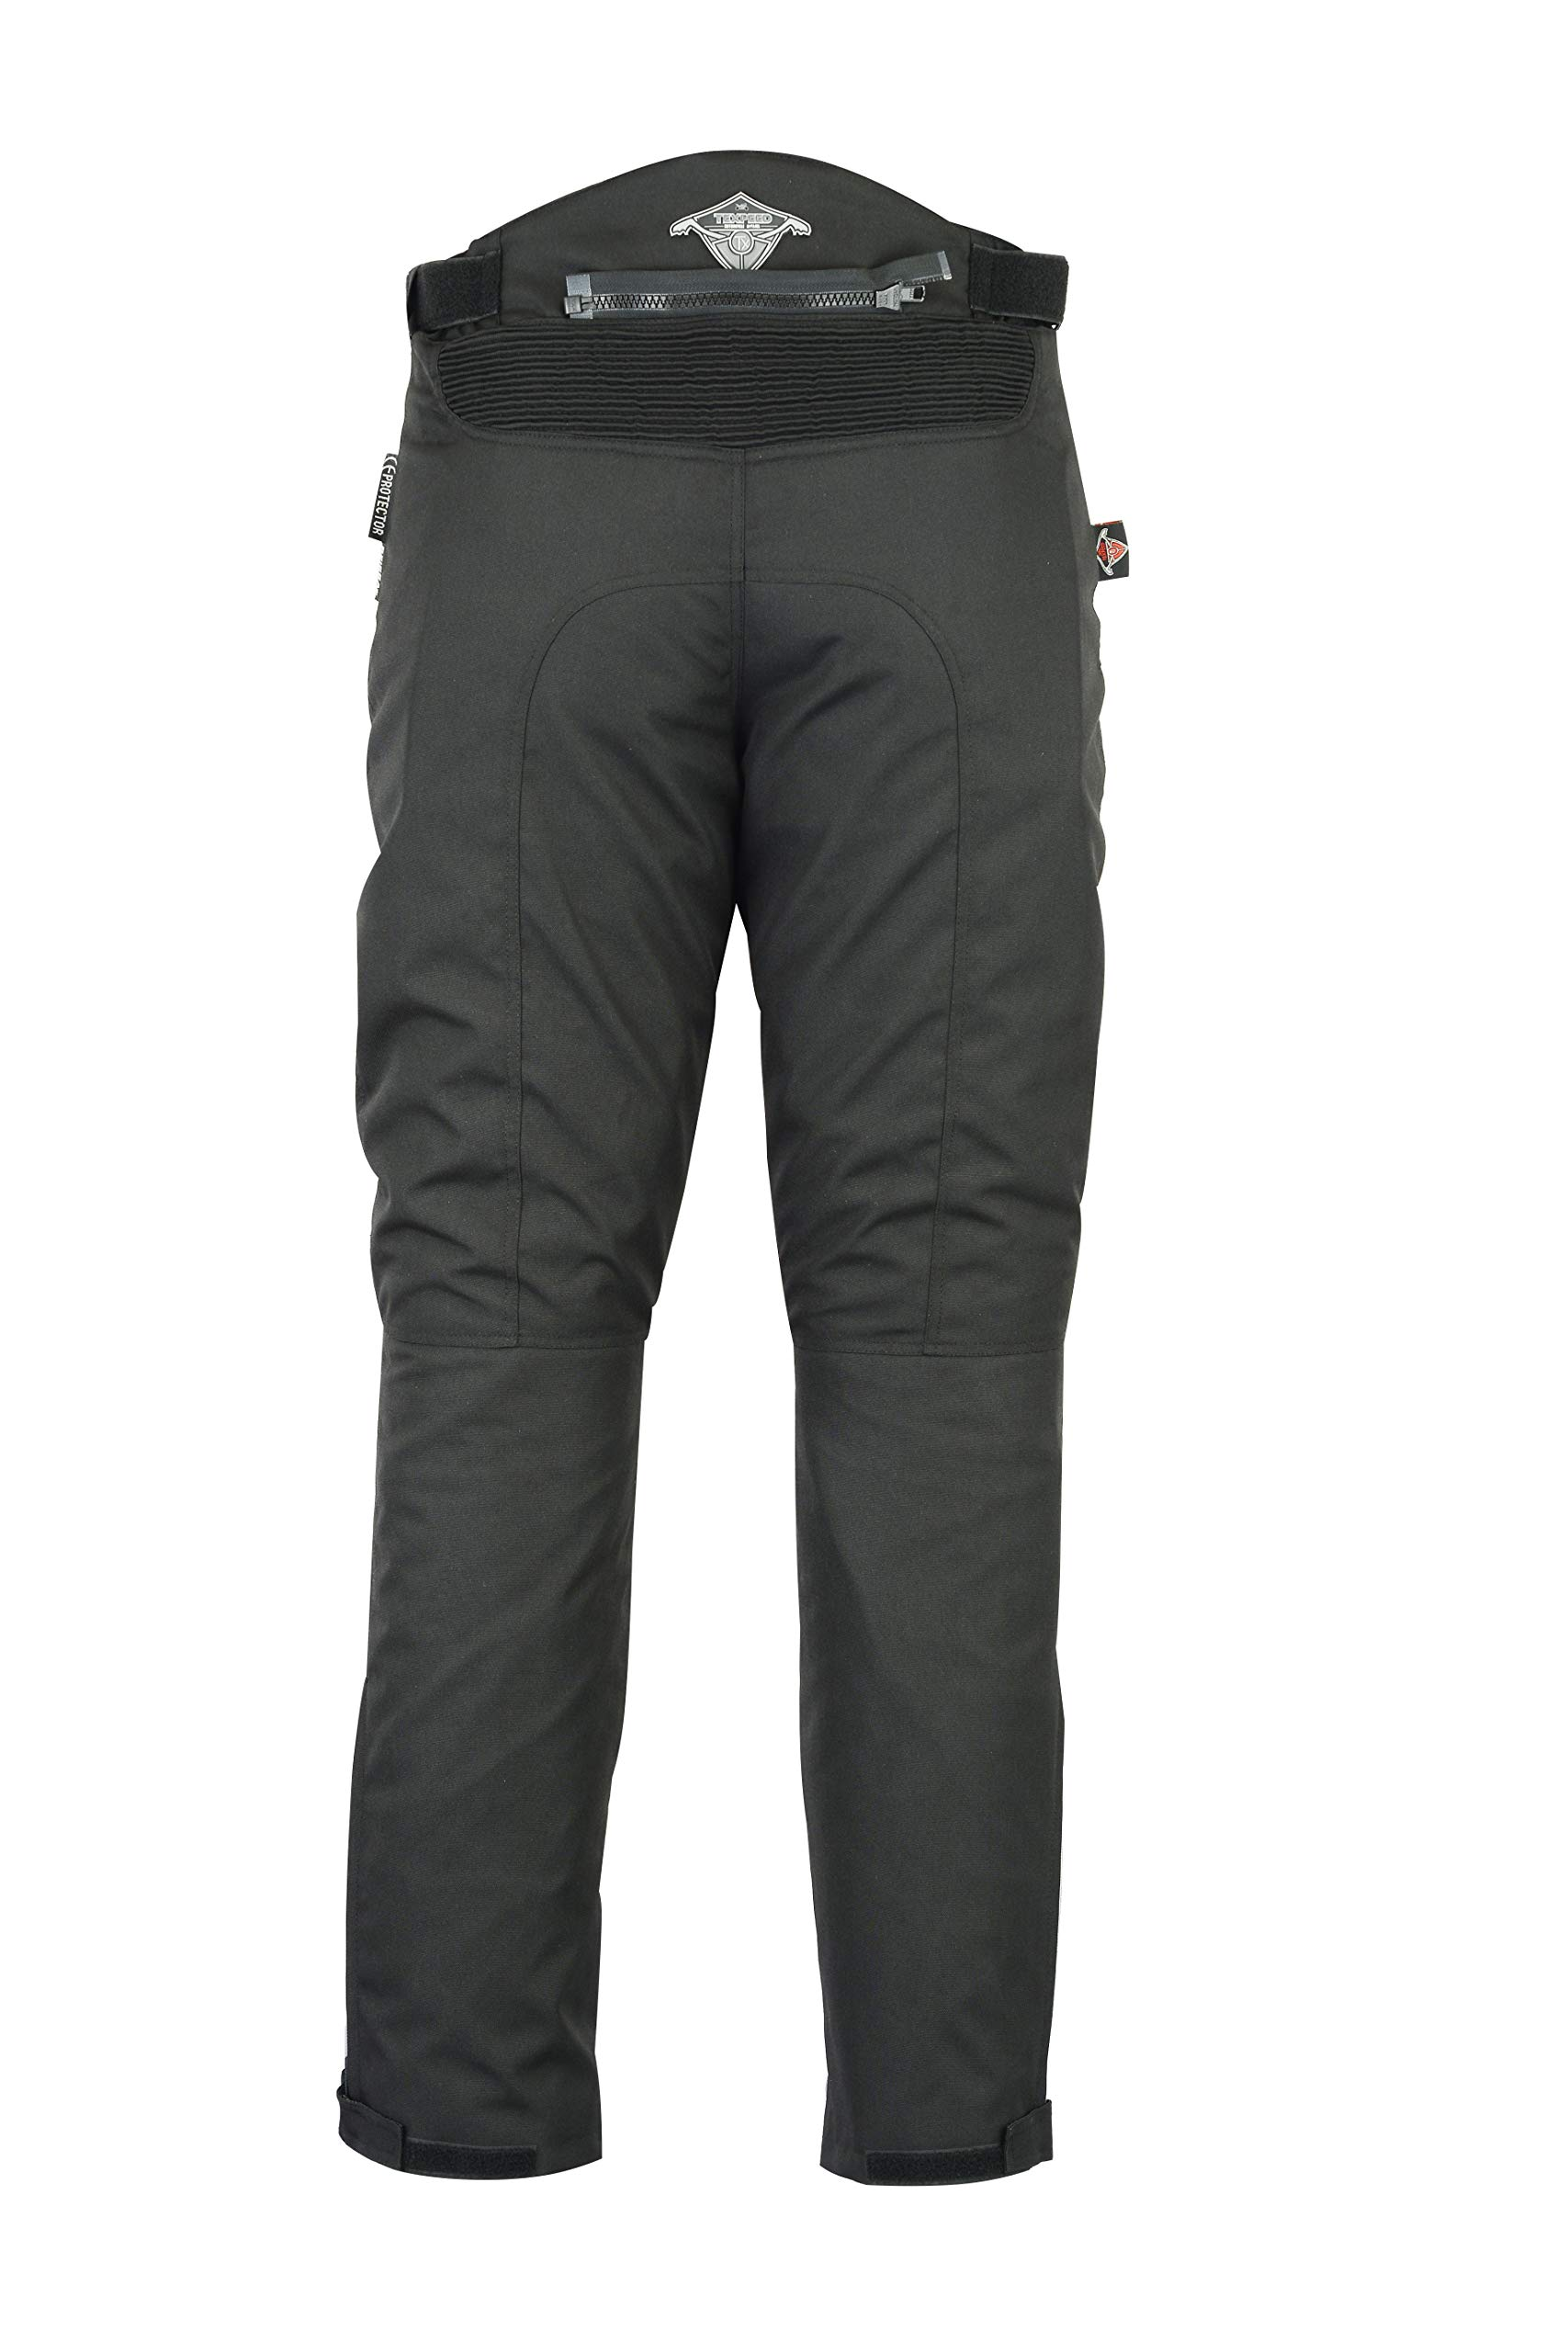 Black Cargo, W40 - L34 Men/'s Motorbike Motorcycle Protective Lining Biker Black Cargo Reinforced Padded Armour Jean Trouser Pant With Free Padding 30 to 48 waist